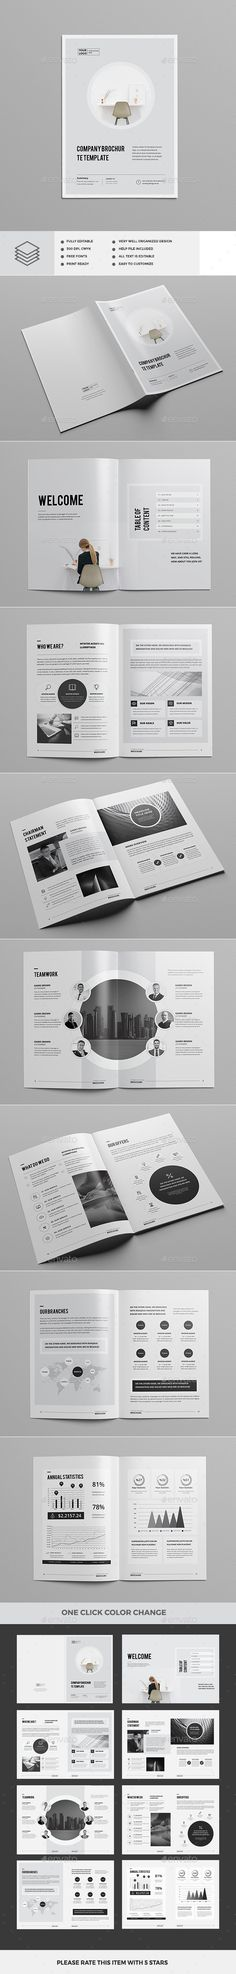 Company Profile 2017 — InDesign INDD #corporate #modern • Download ➝ https://graphicriver.net/item/company-profile-2017/19410231?ref=pxcr